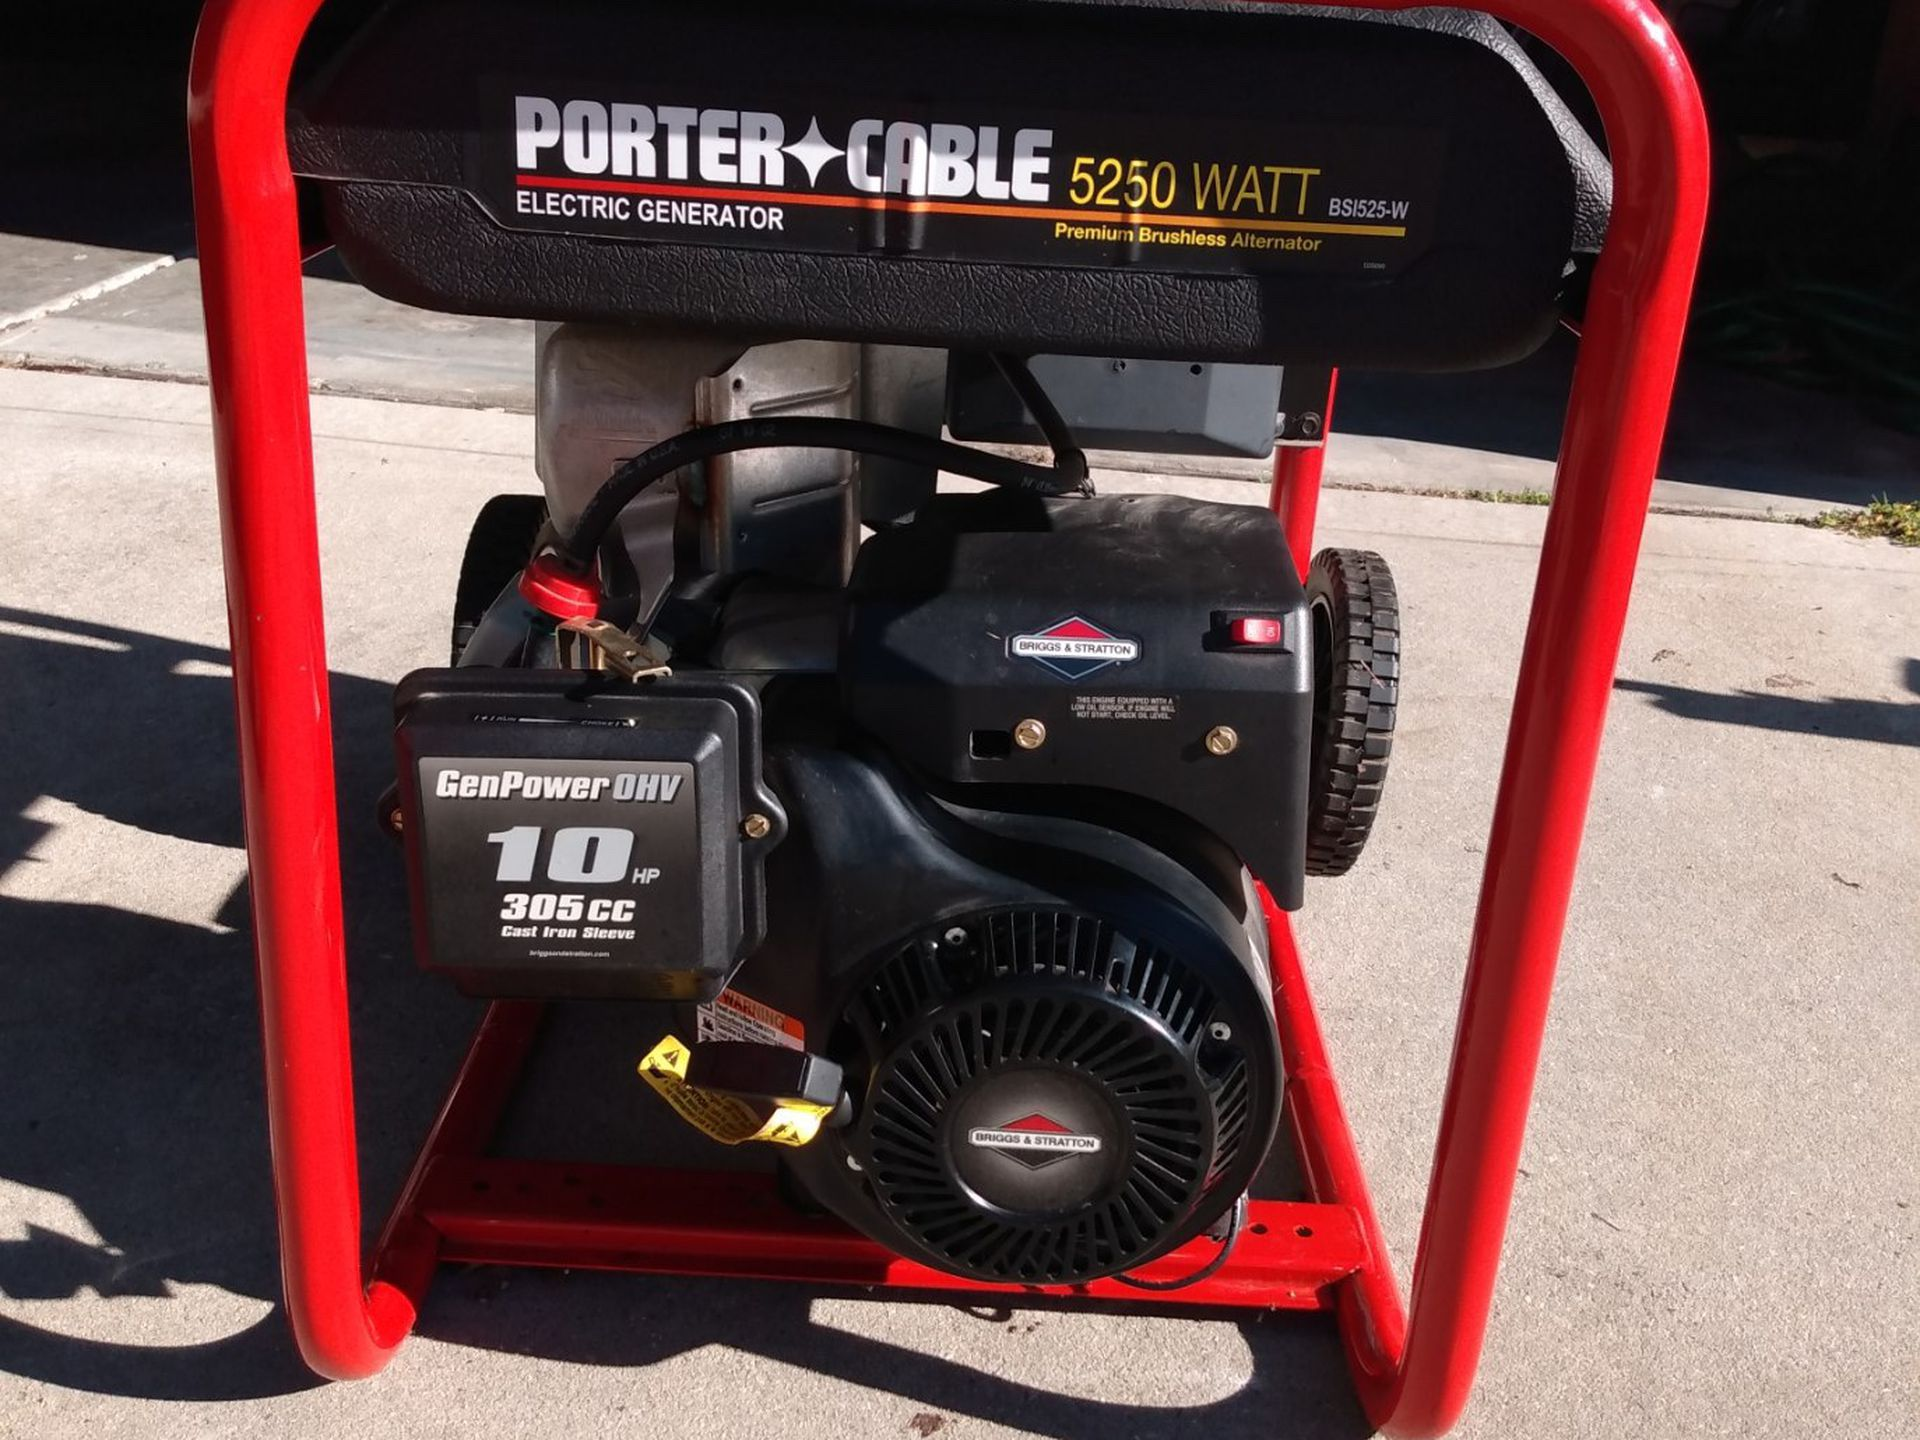 Porter Cable electric generator